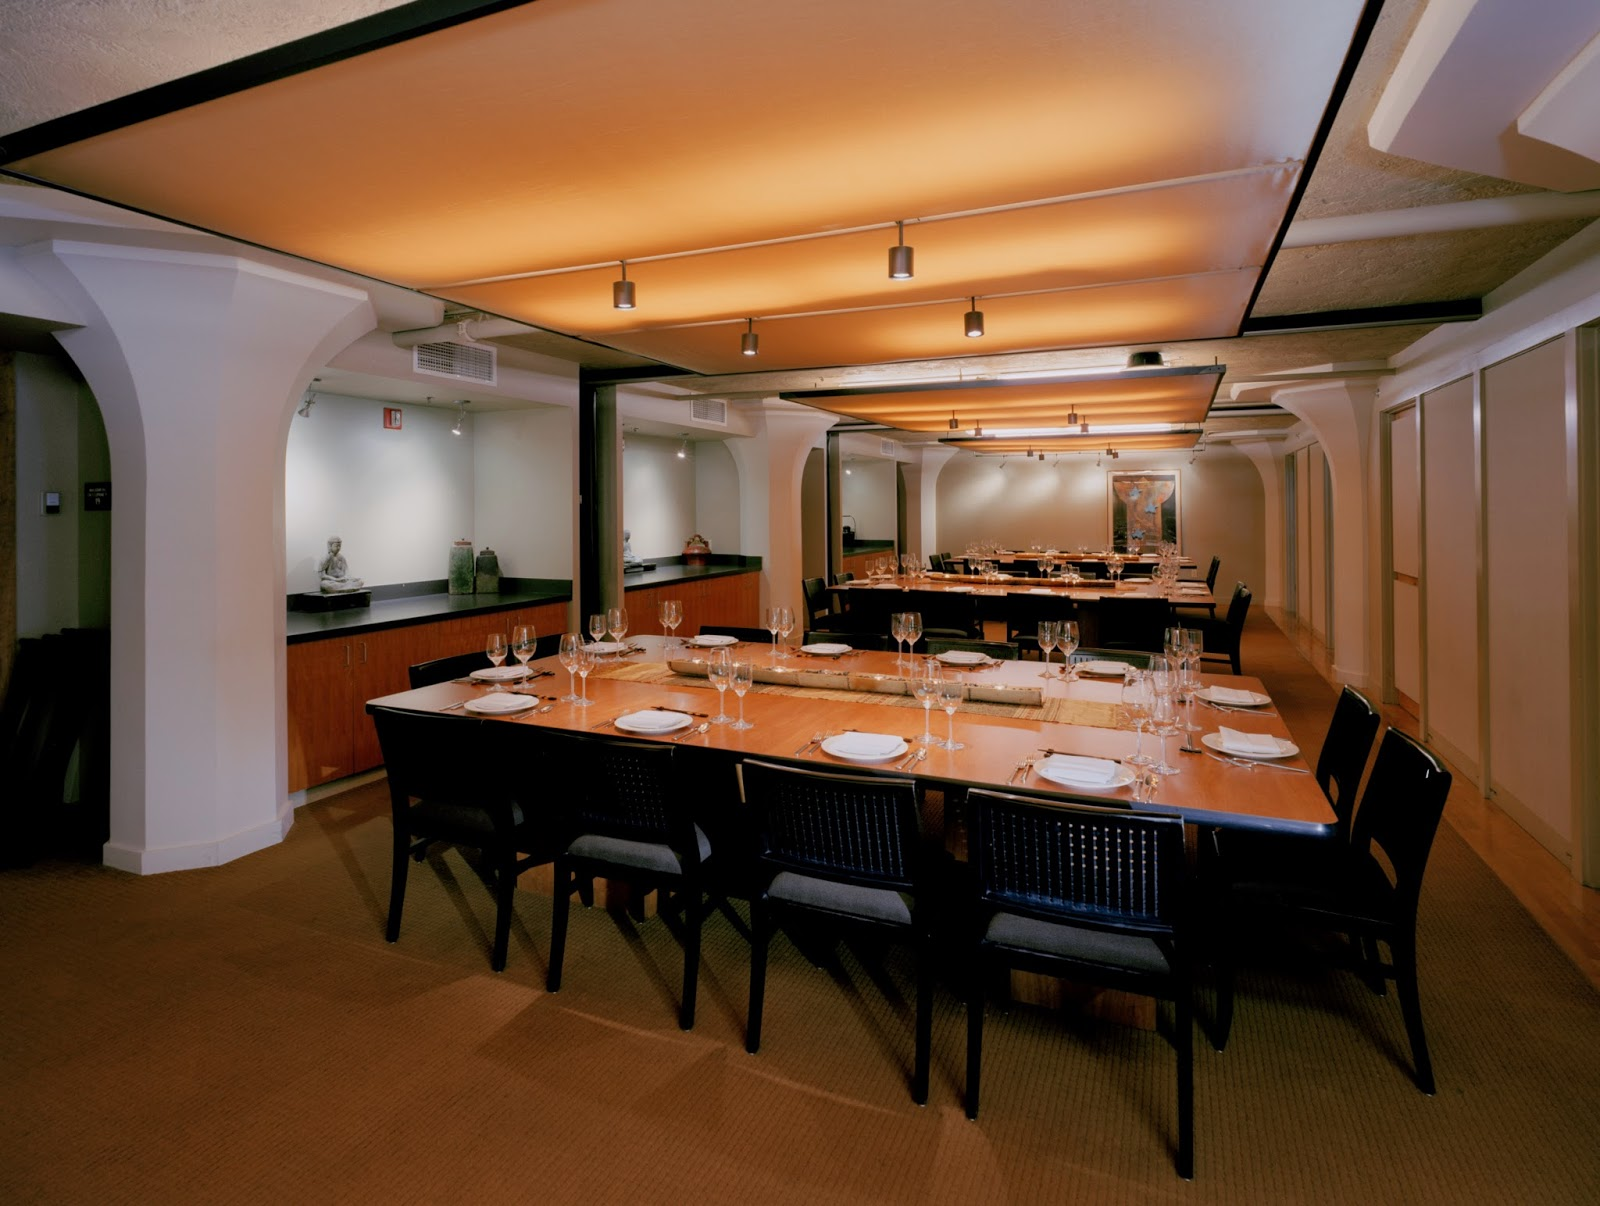 To Inquire About Availability, Or Find Out More, Please Call Our Private  Dining And Catering Department At 206.838.4312. Be Sure To Mention This  Blog To ...